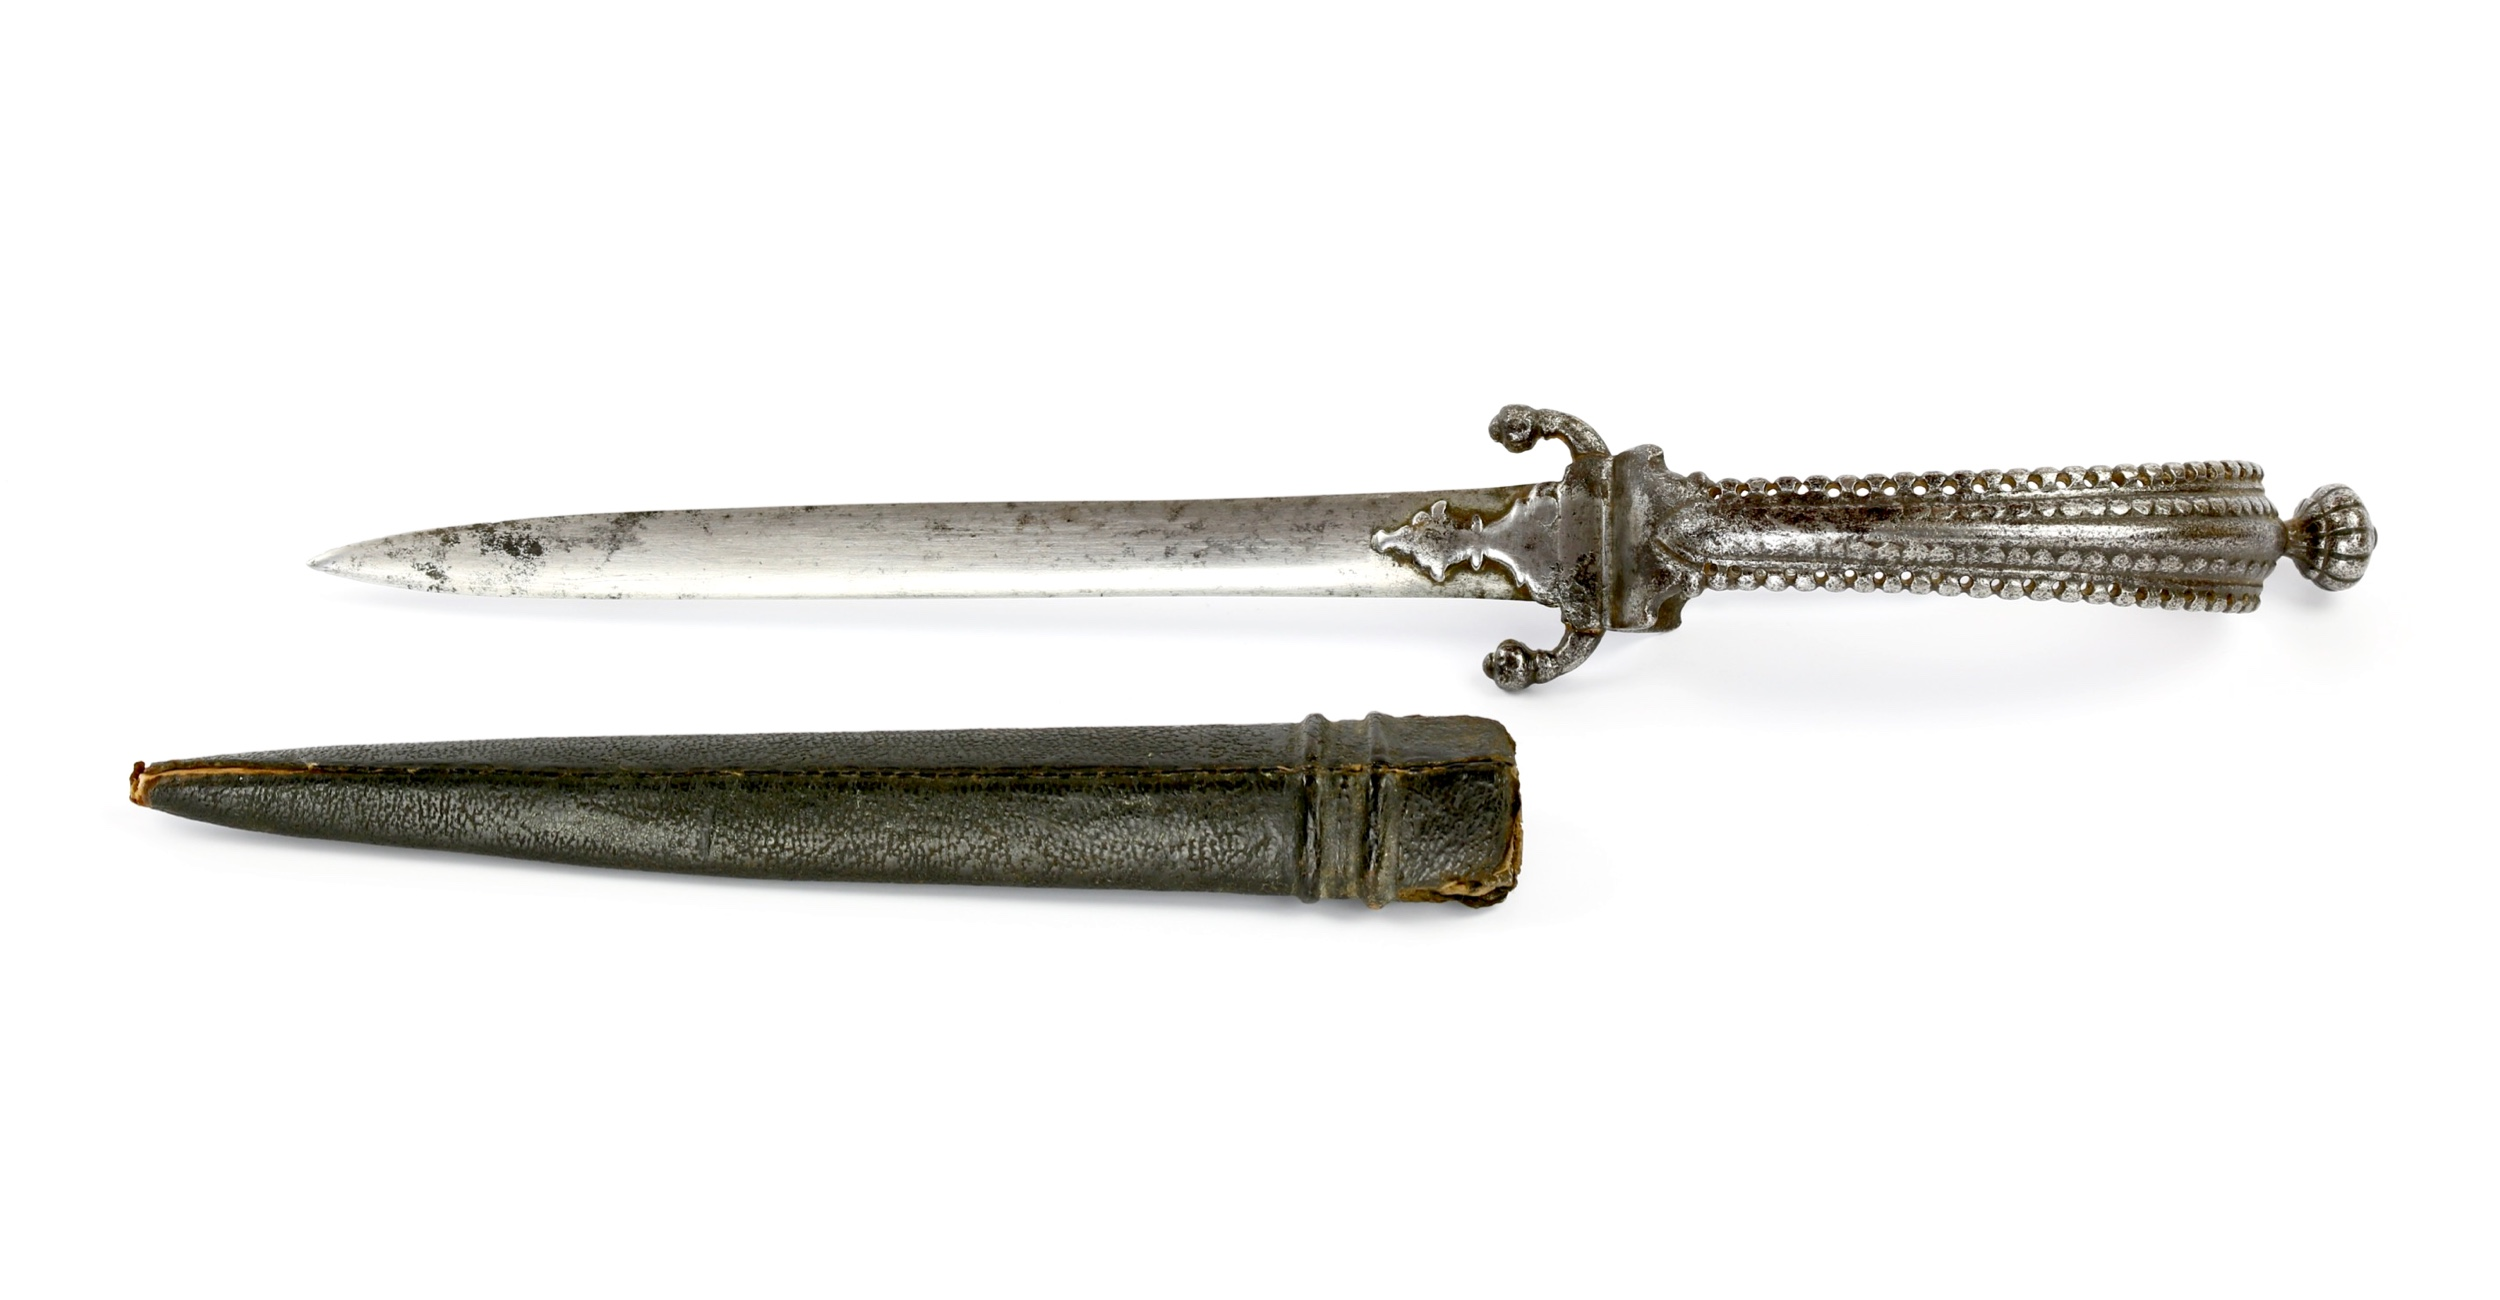 South Indian stiletto dagger